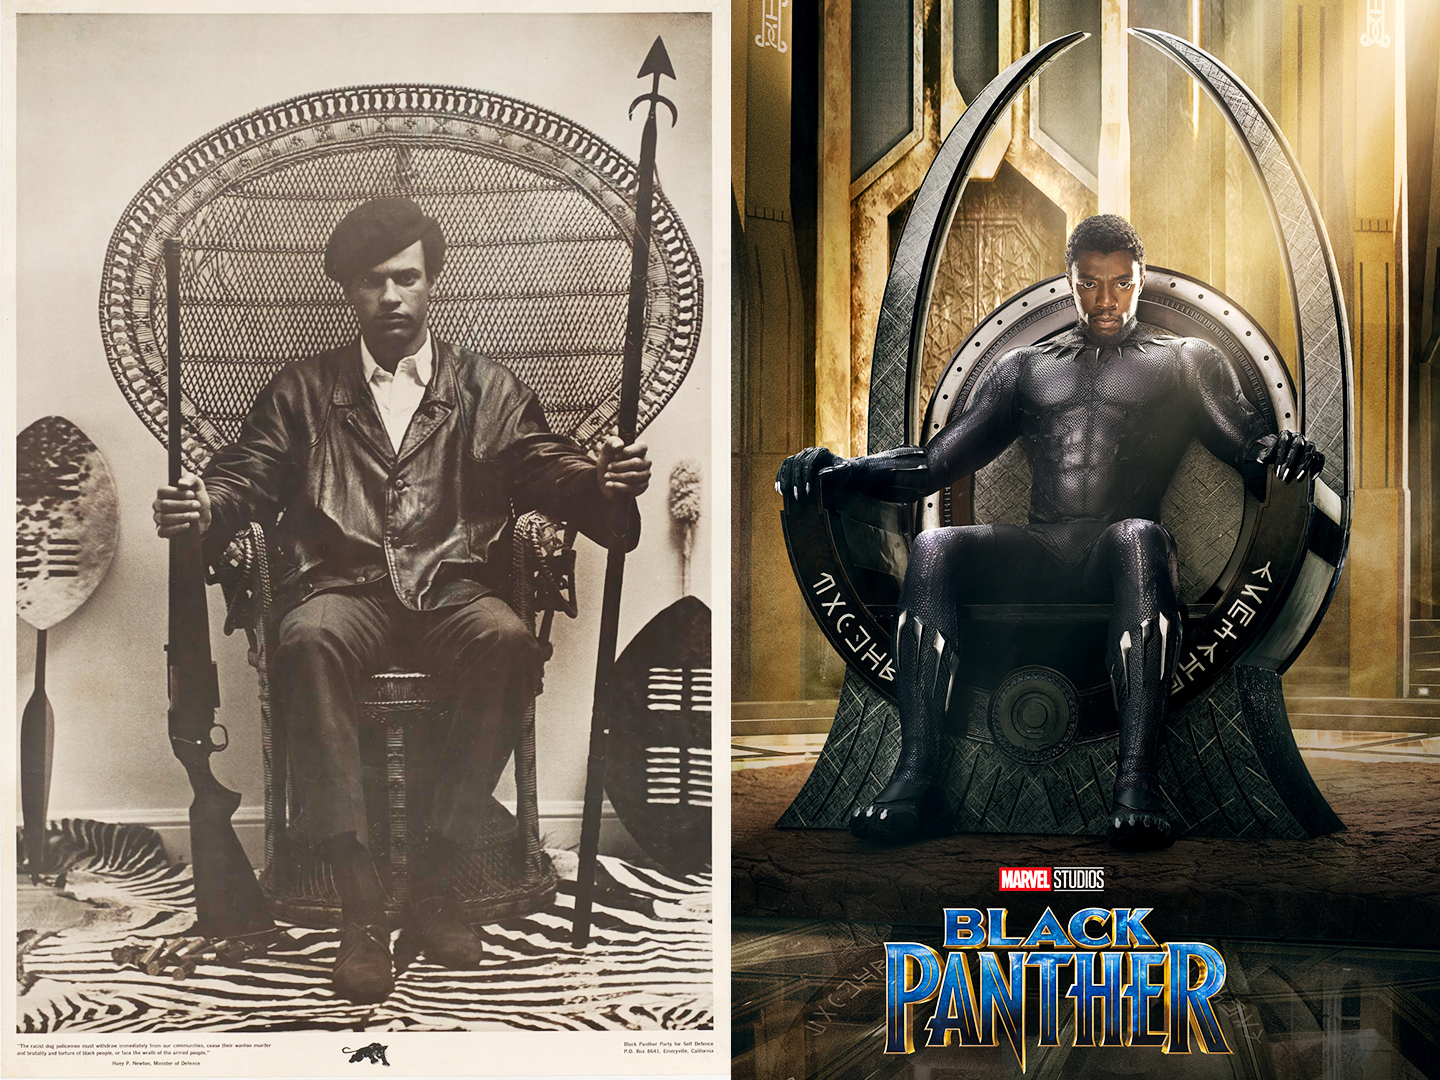 In Black Panther, Wakandas throne references real